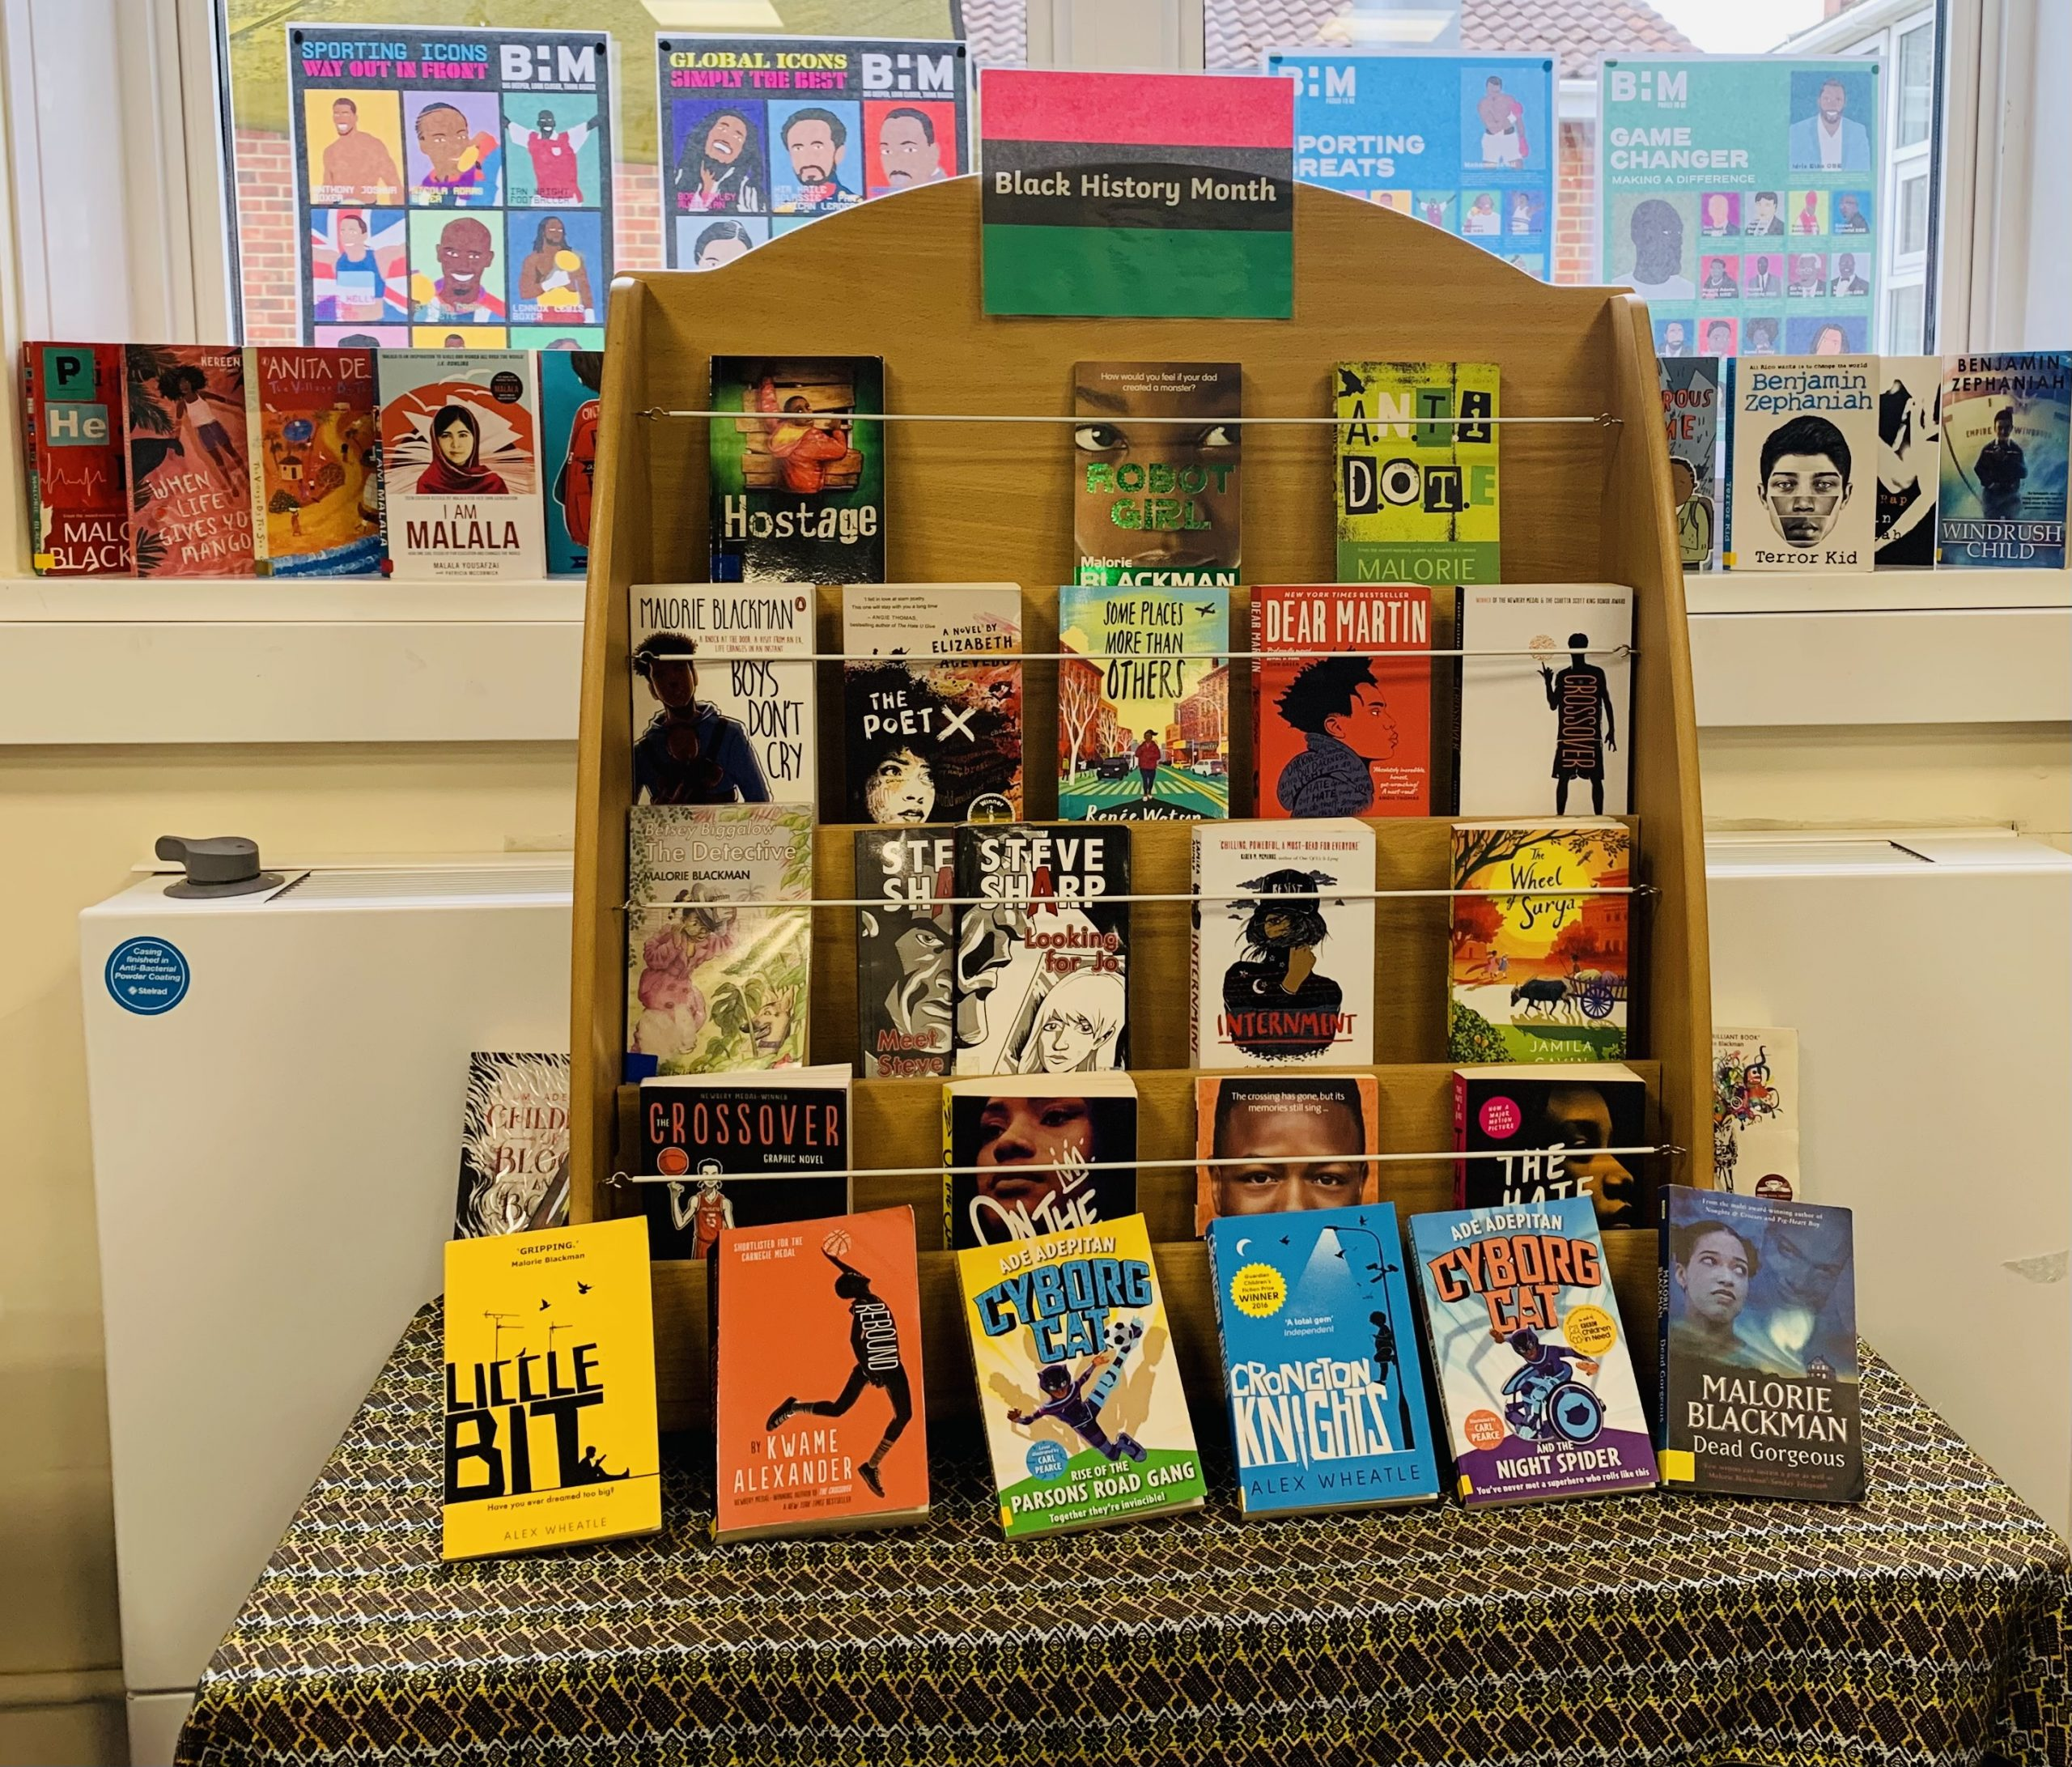 The BHM display in our school library